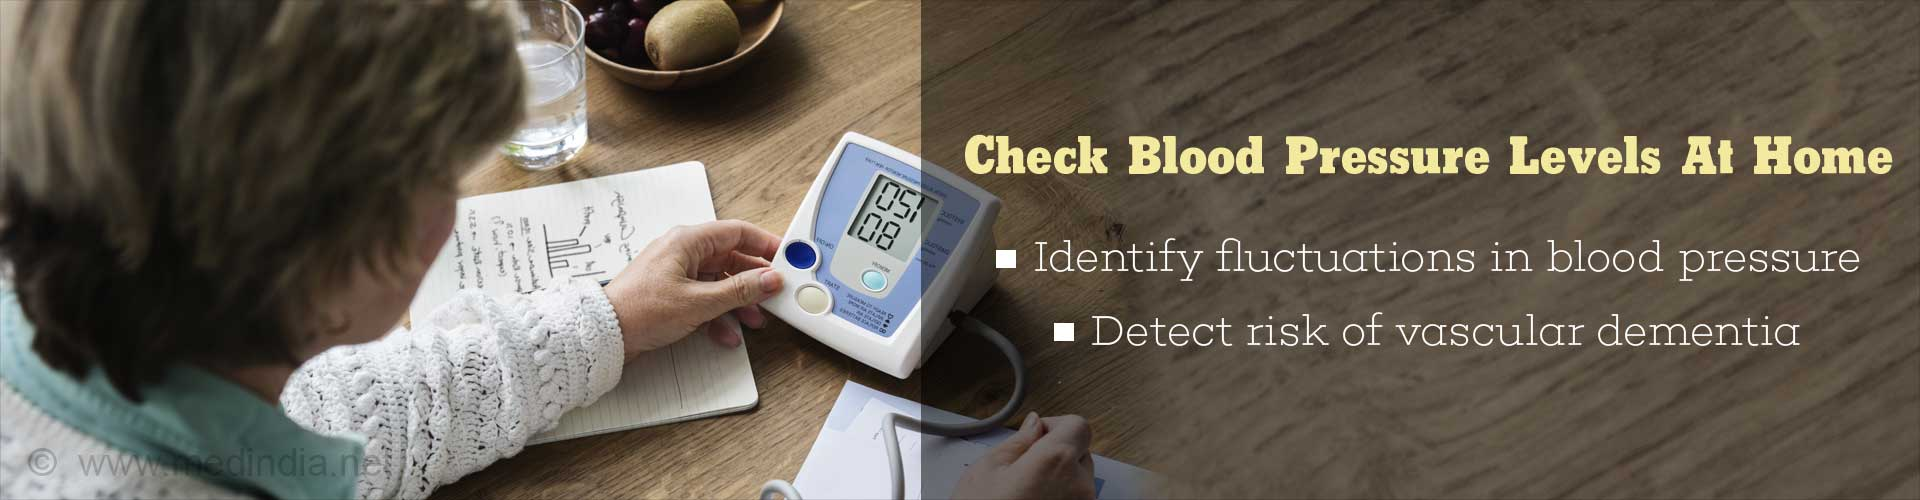 Check blood pressure levels at home - identify fluctuations in blood pressure - detect risk of vascular dementia